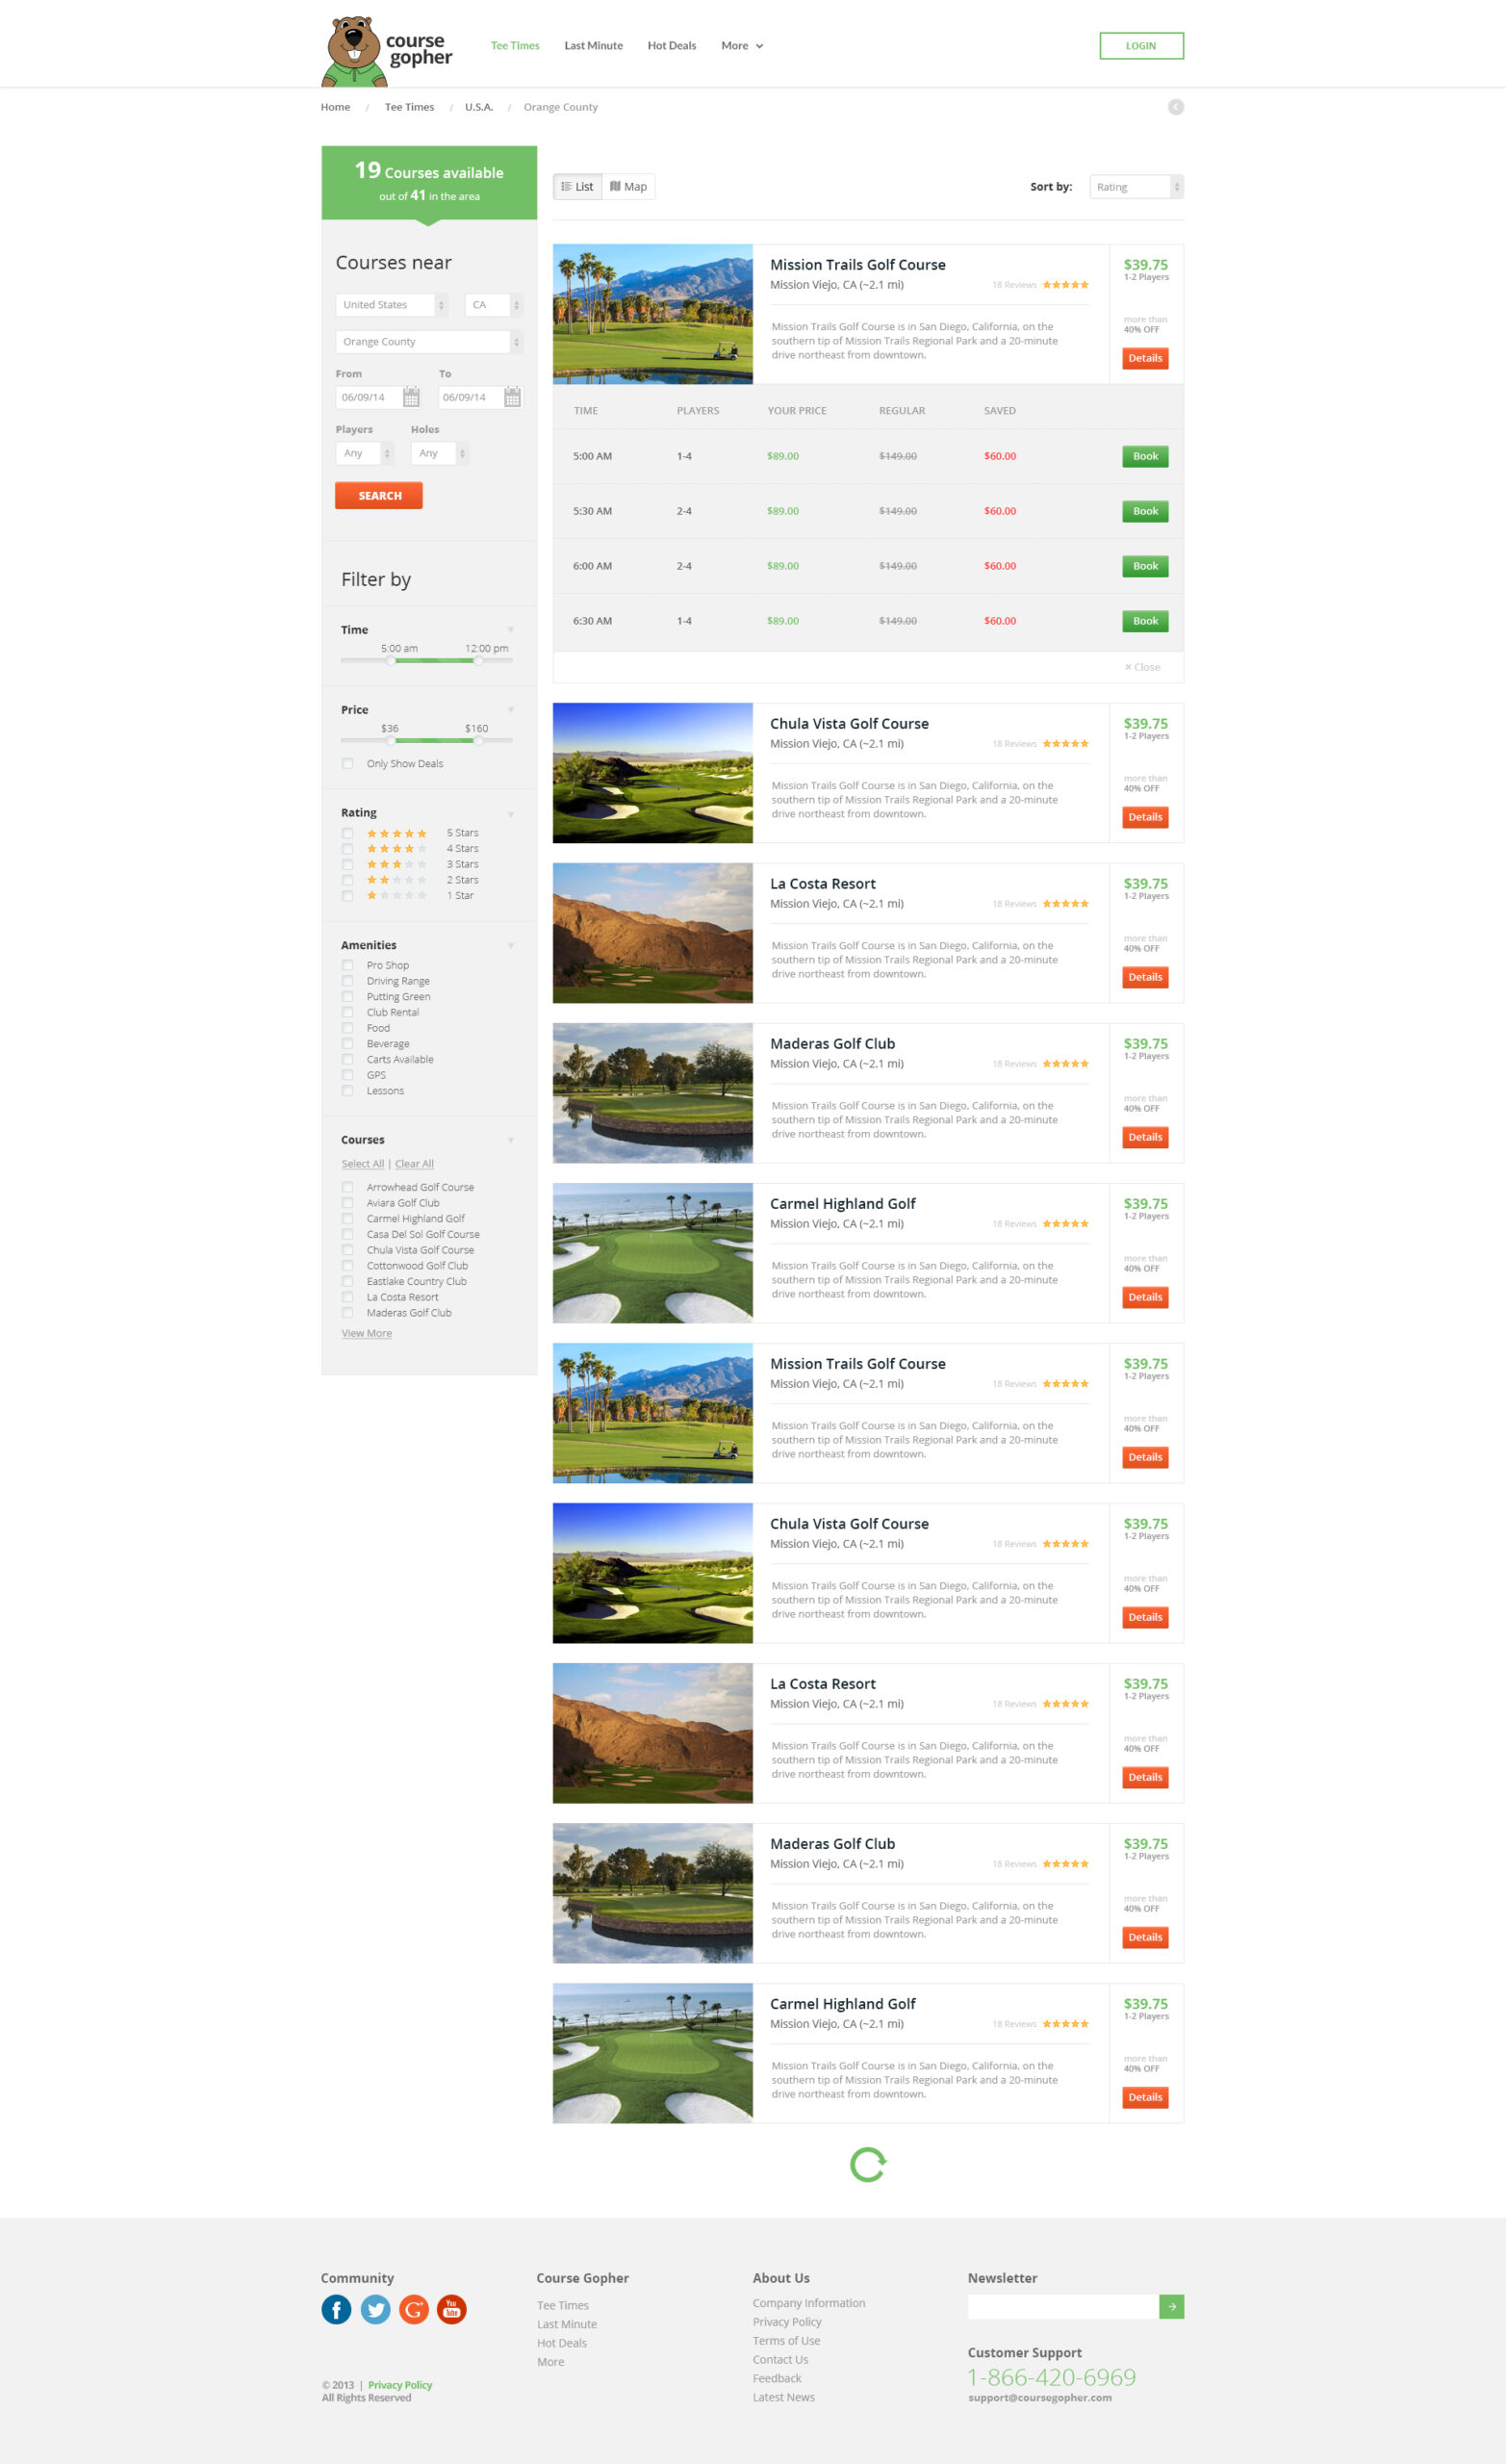 CourseGopher-02-SearchResults